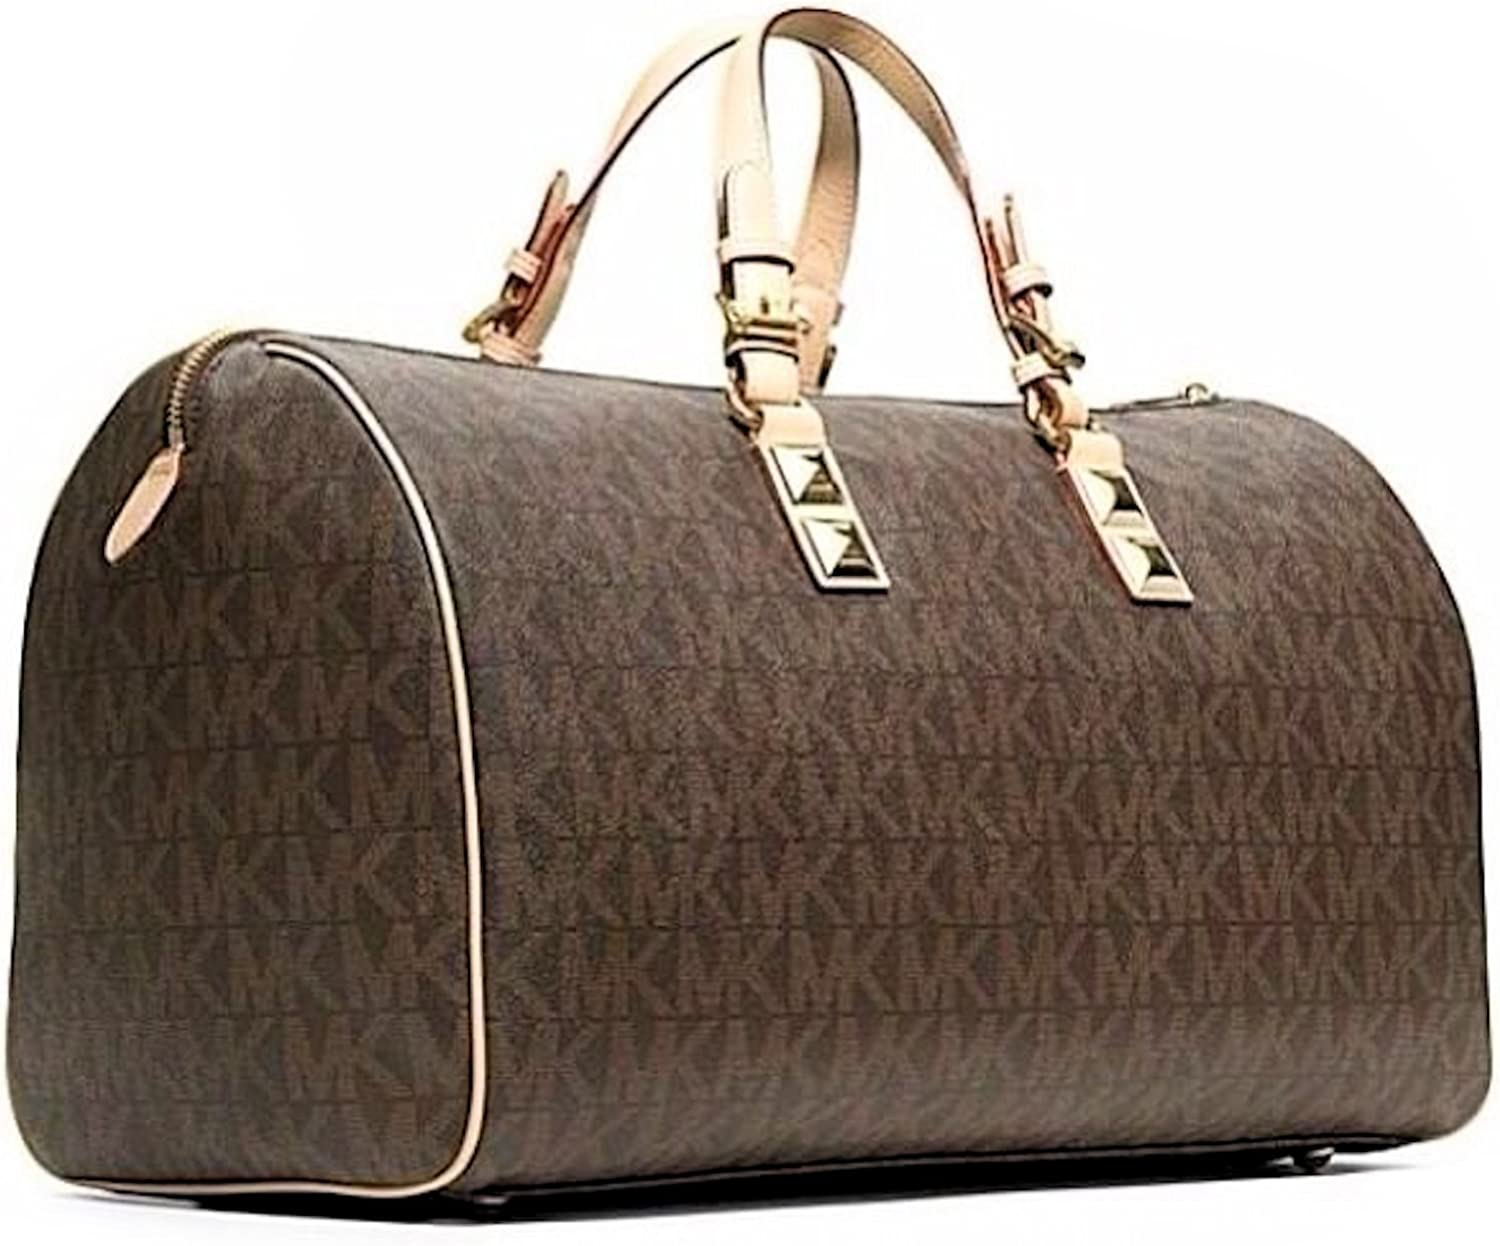 MK carry on luggage